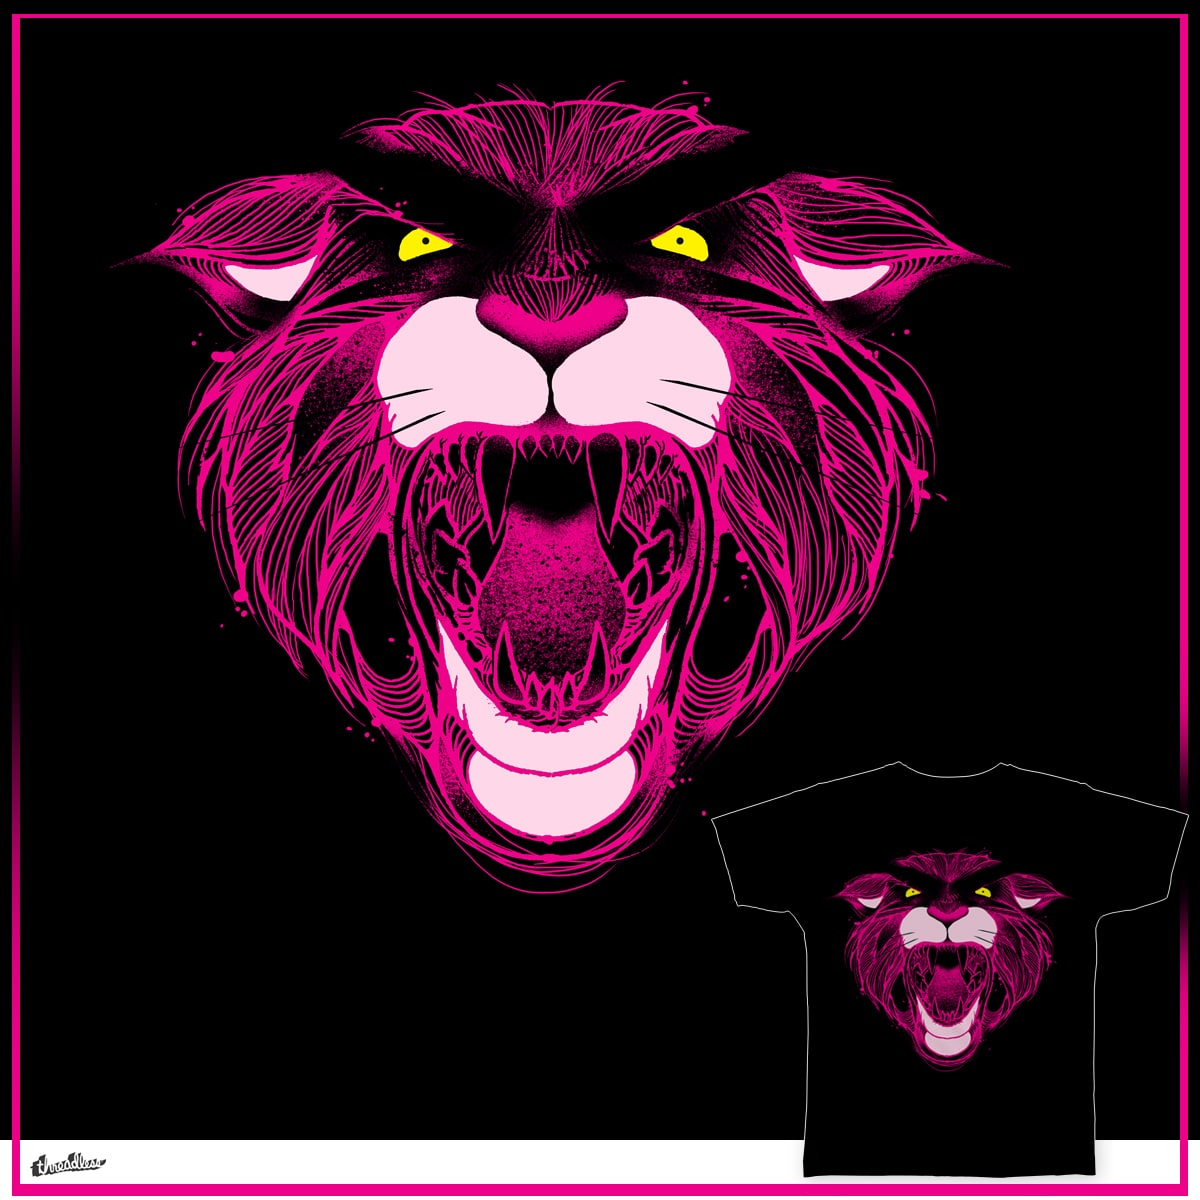 The Pink Panther by anwarrafiee on Threadless